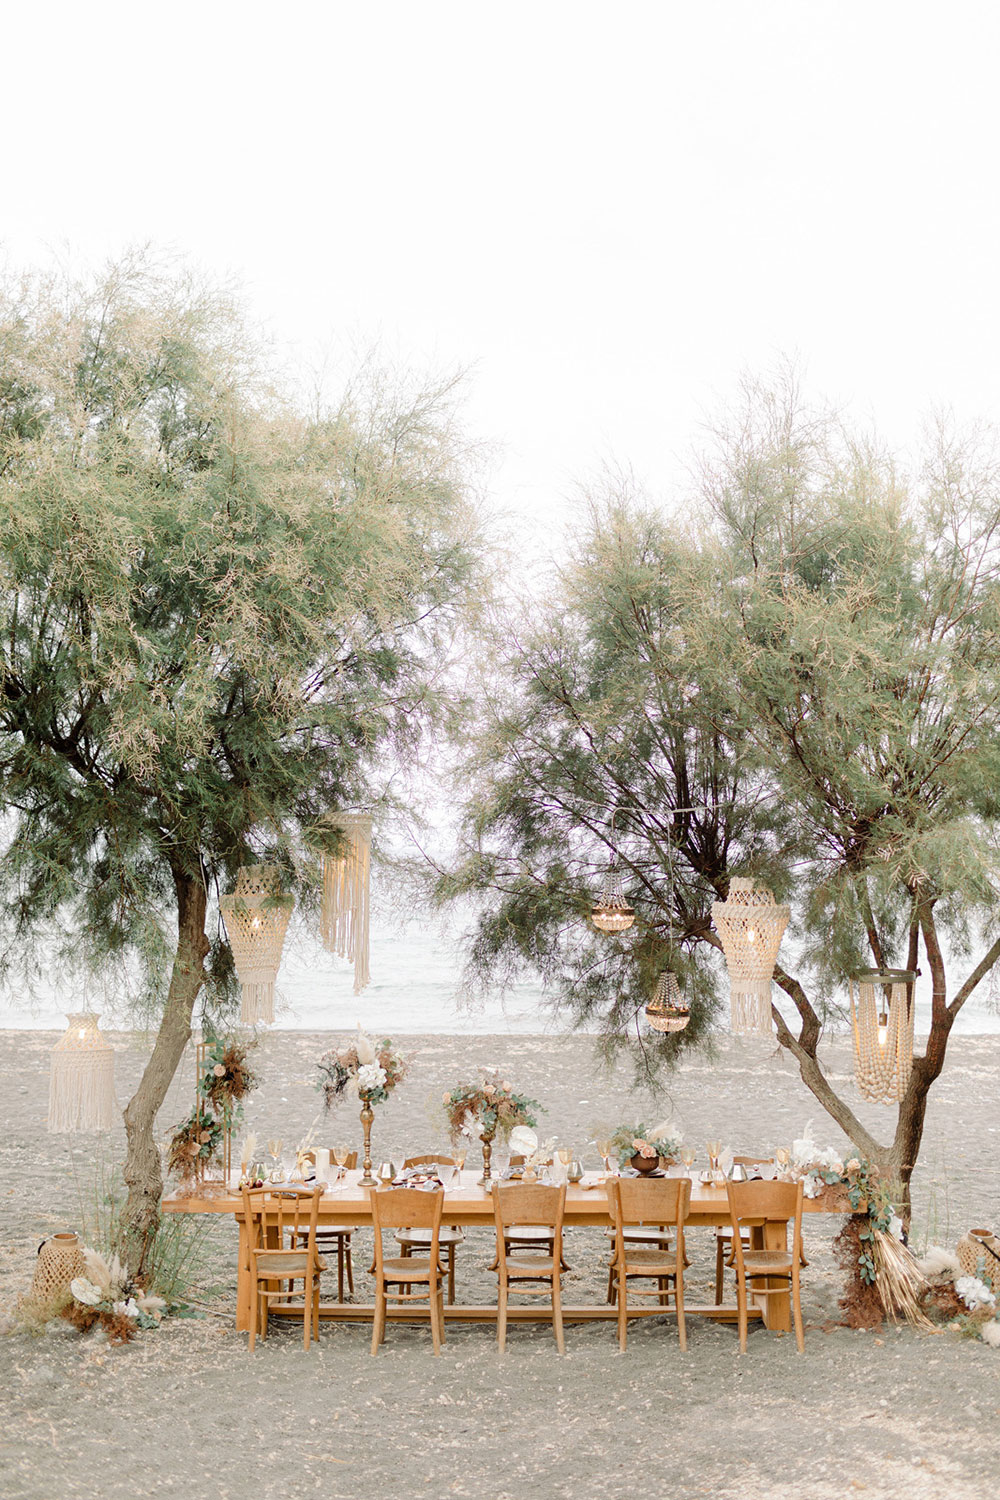 The wedding reception space was organized right on the beach, with trees, blooms and greenery